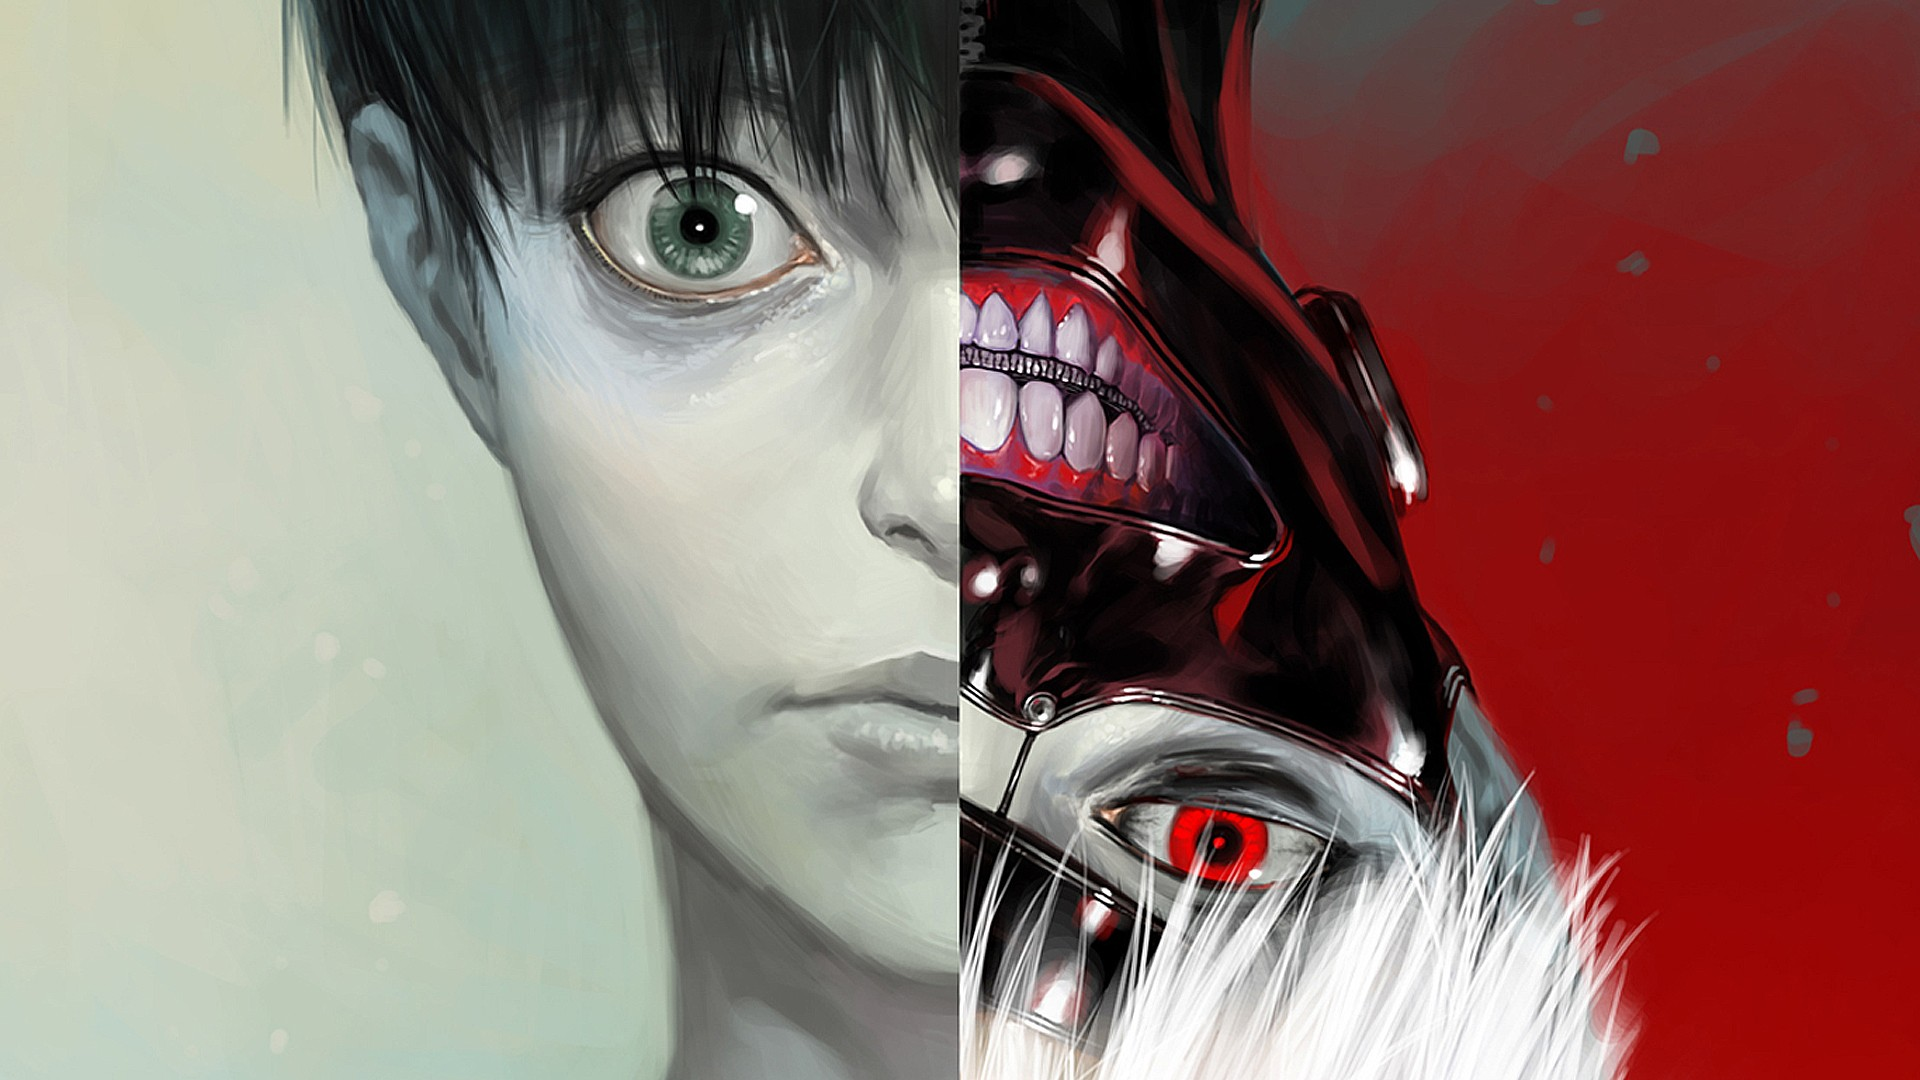 Dowload Walpaper Anime Tokyo Ghoul 2019: Tokyo Ghoul Wallpaper HD ·① Download Free Cool Backgrounds